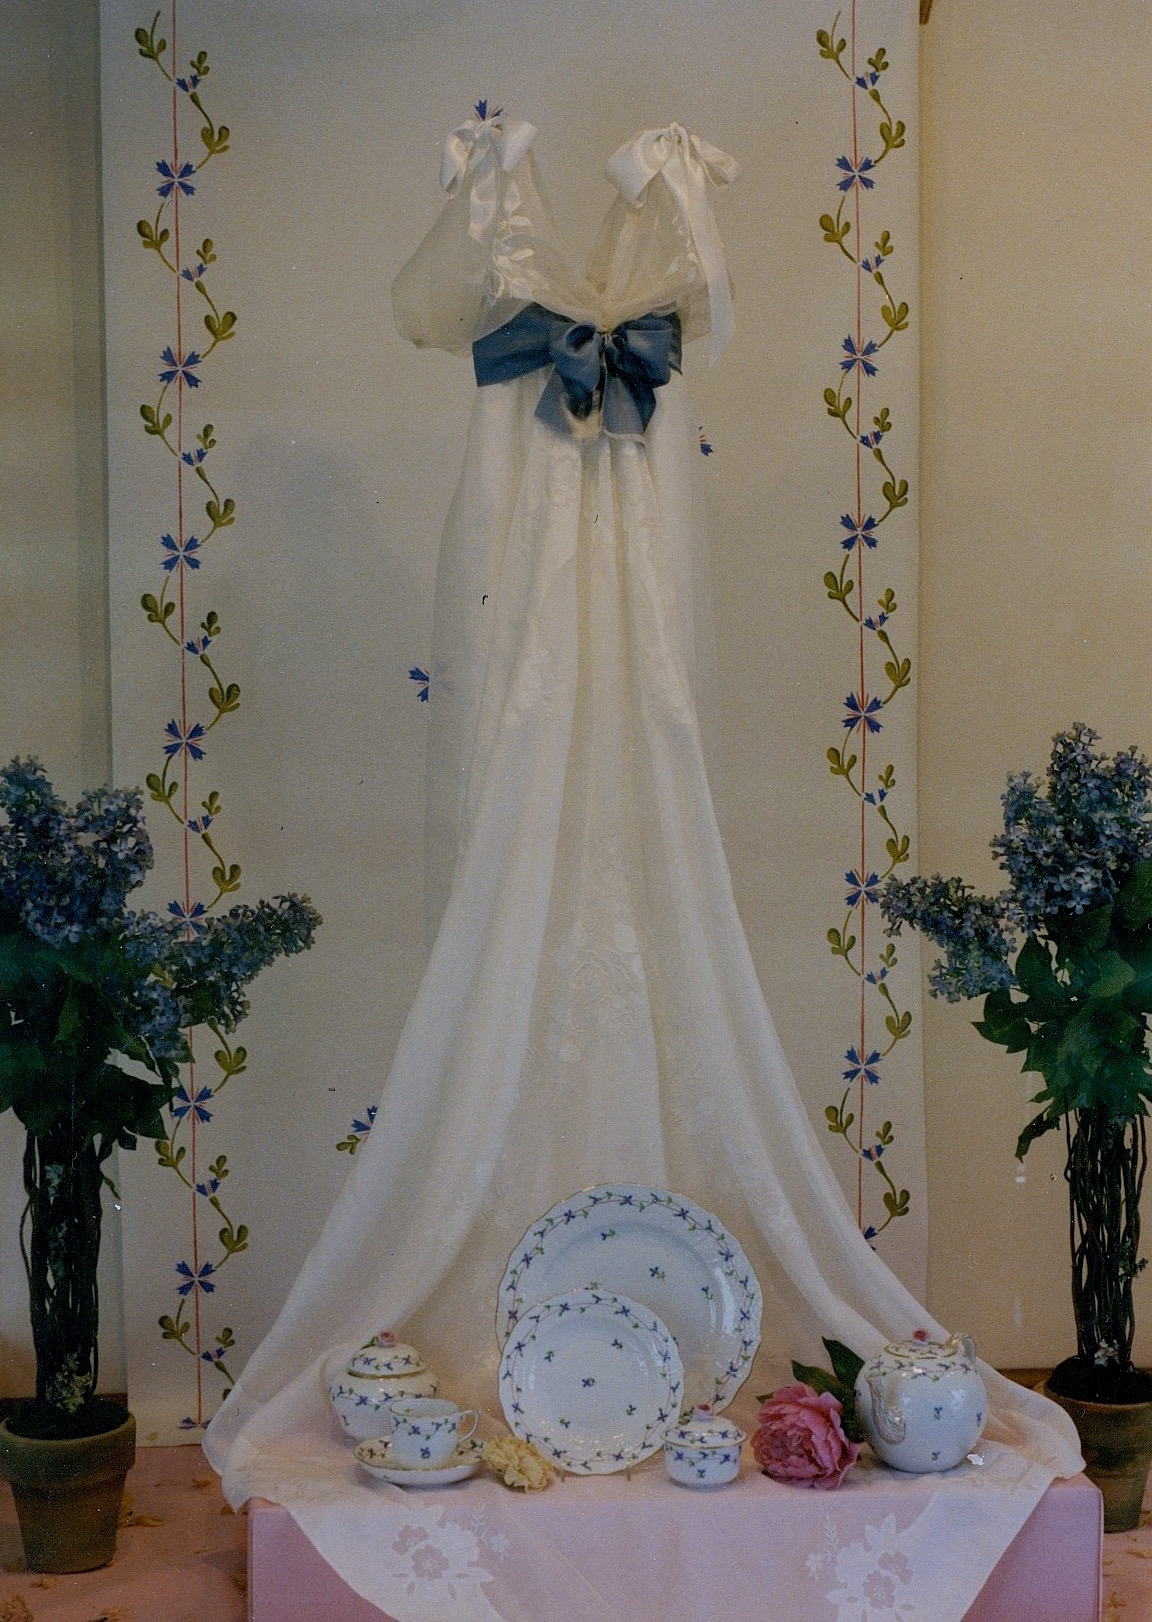 """Herend Porcelain Windows - June Bride window, featuring Blue Garland pattern with wedding dress """"train"""" becoming tablecloth for china place setting"""